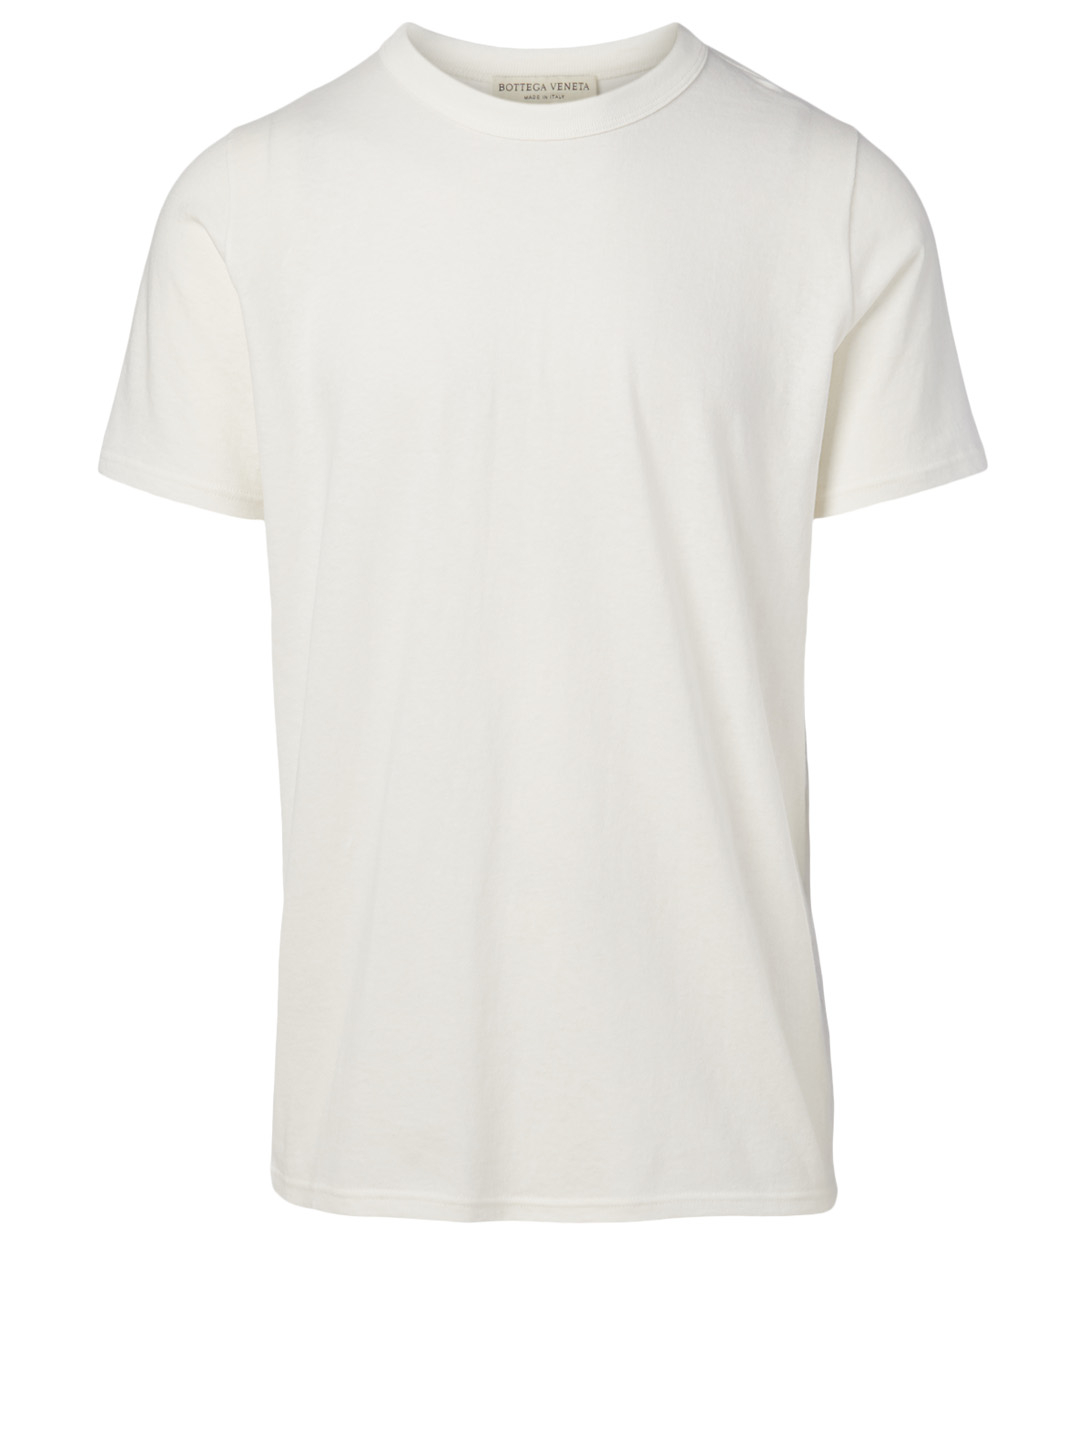 BOTTEGA VENETA Sunset Cotton T-Shirt Men's White